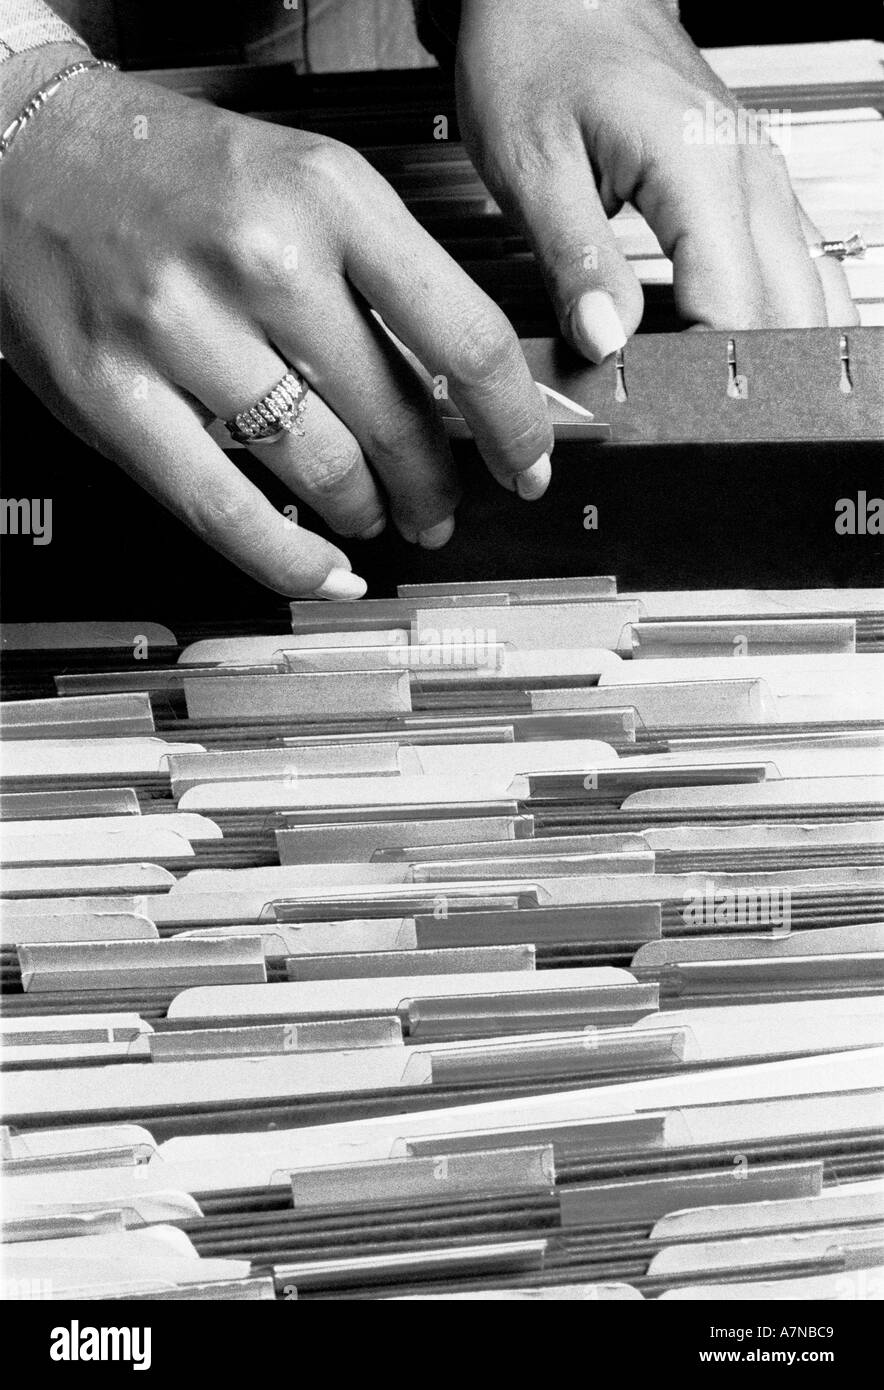 Close up of a woman hands as she looks through a drawer of hanging files - Stock Image